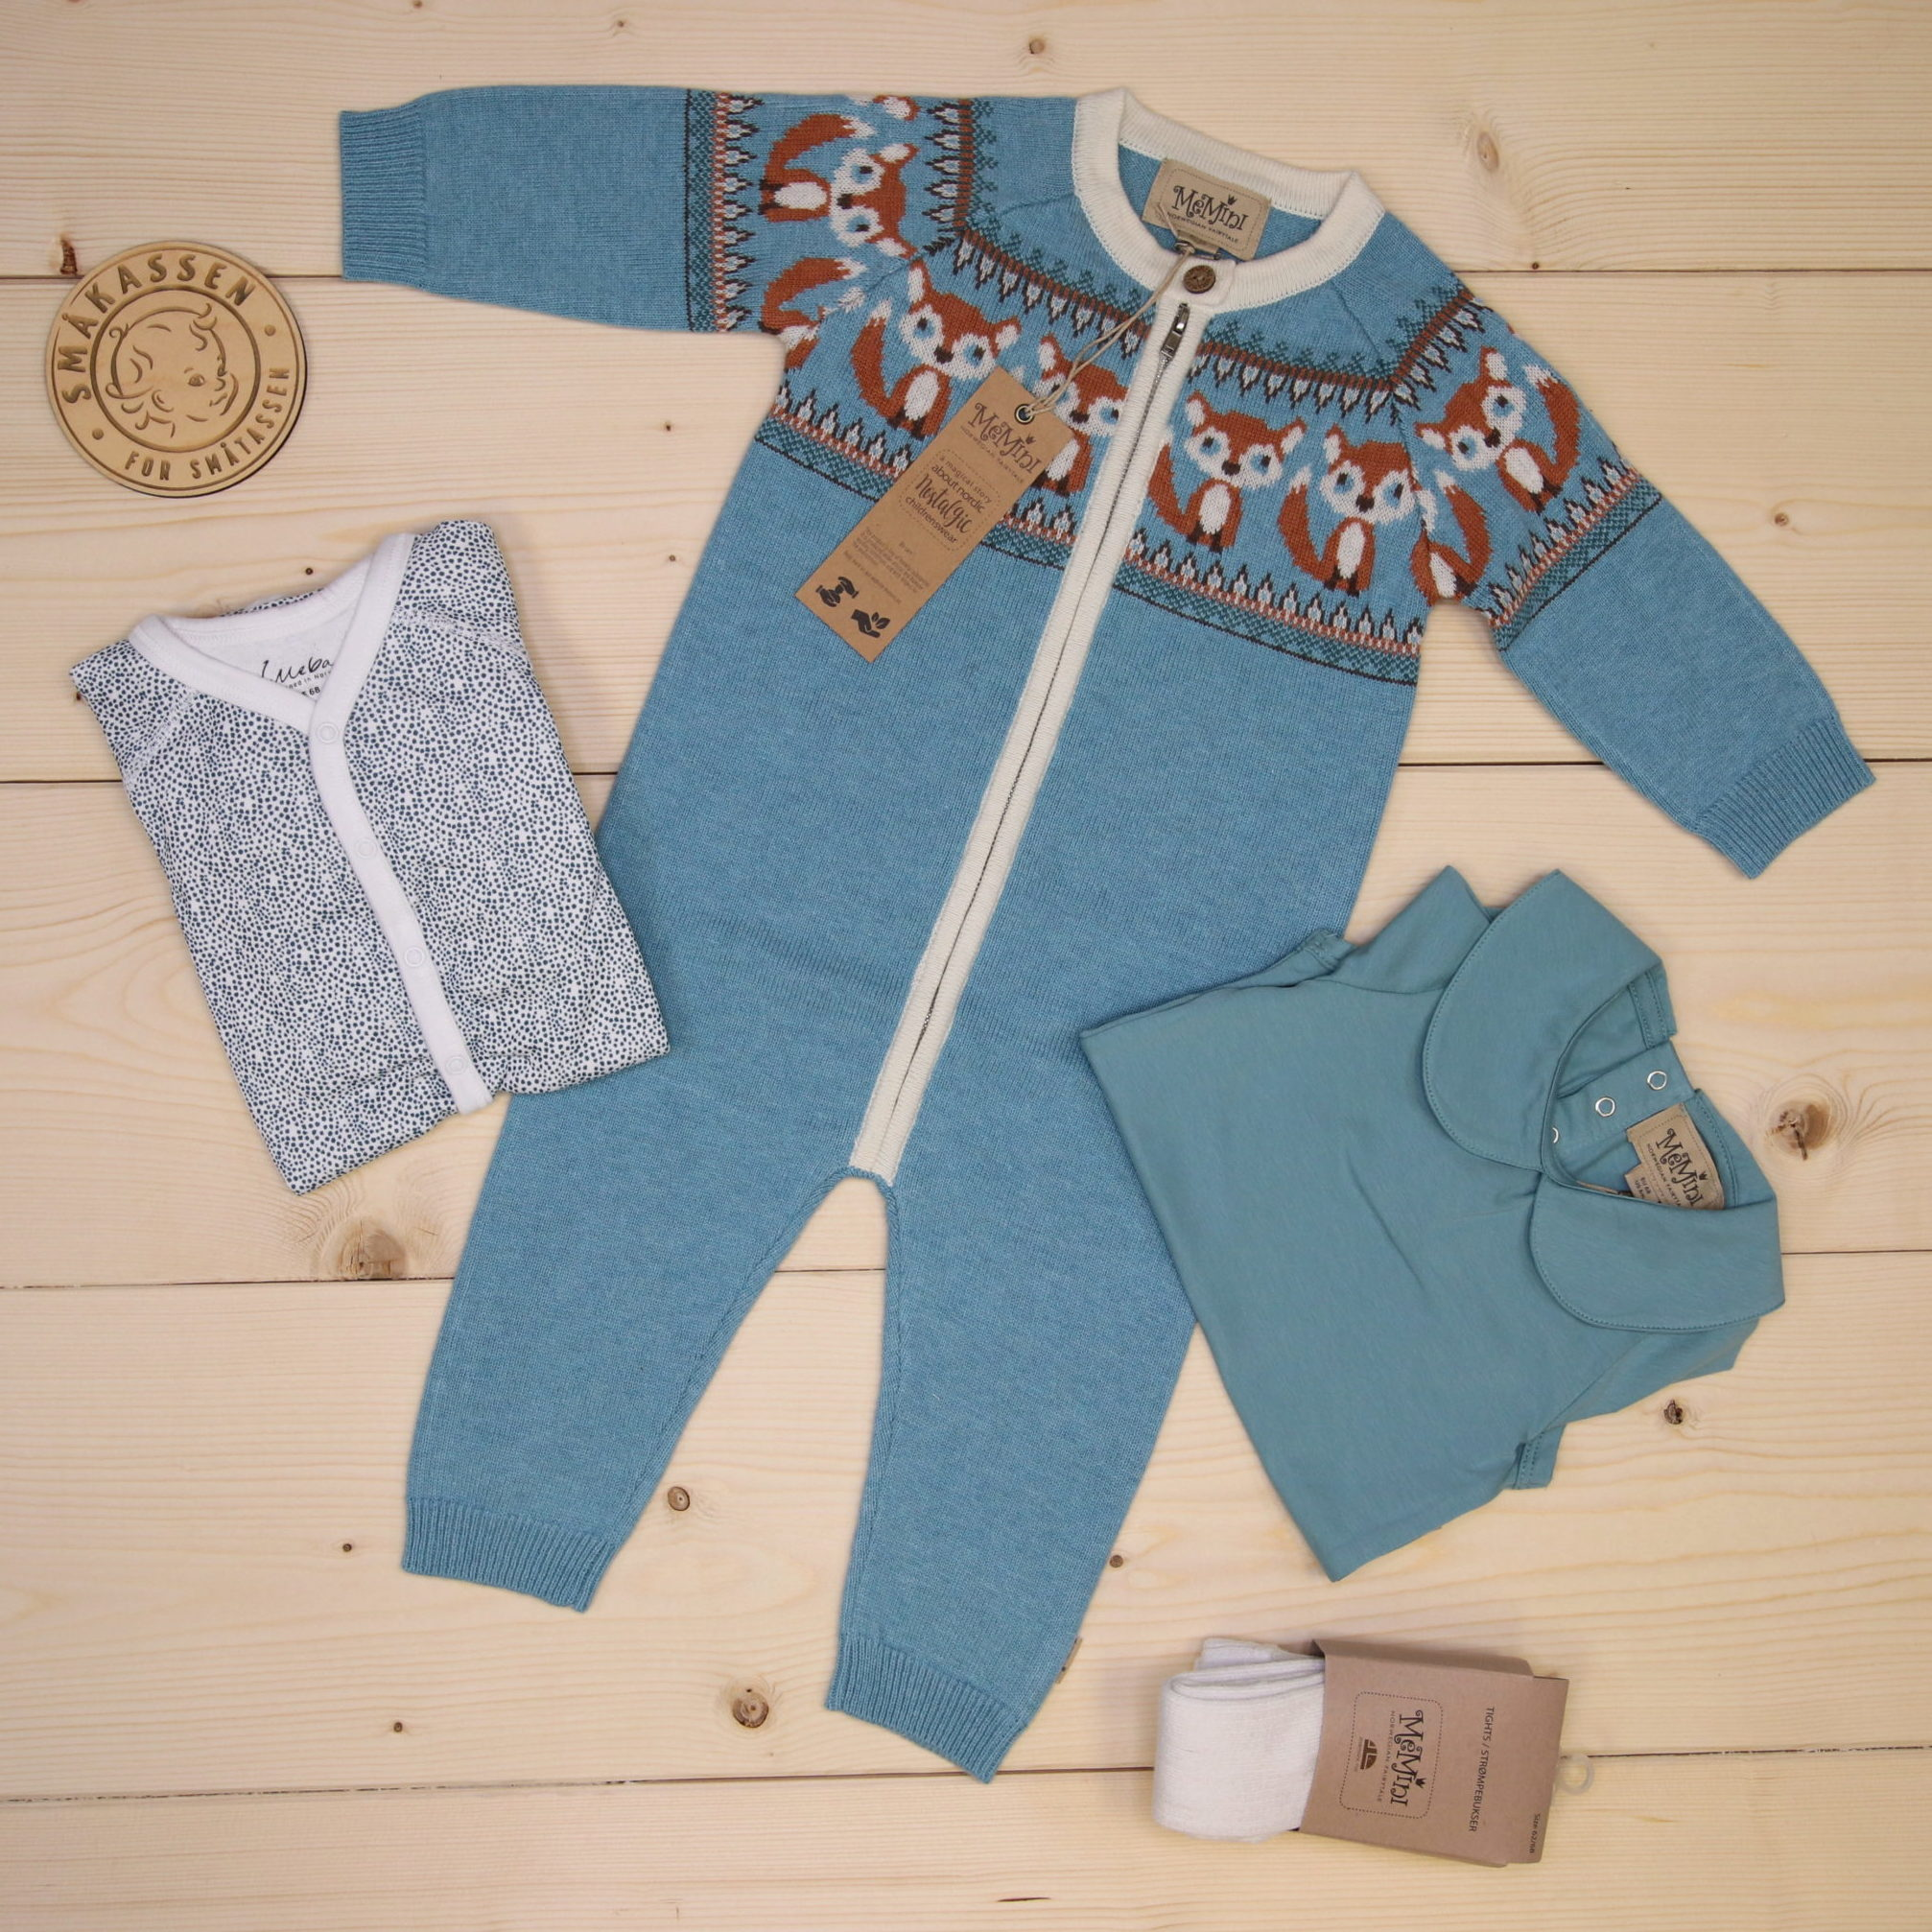 This is a 1500 NOK* Småkassen that we prepared for a boy  in the styles cute, cool, and colorful in size 68